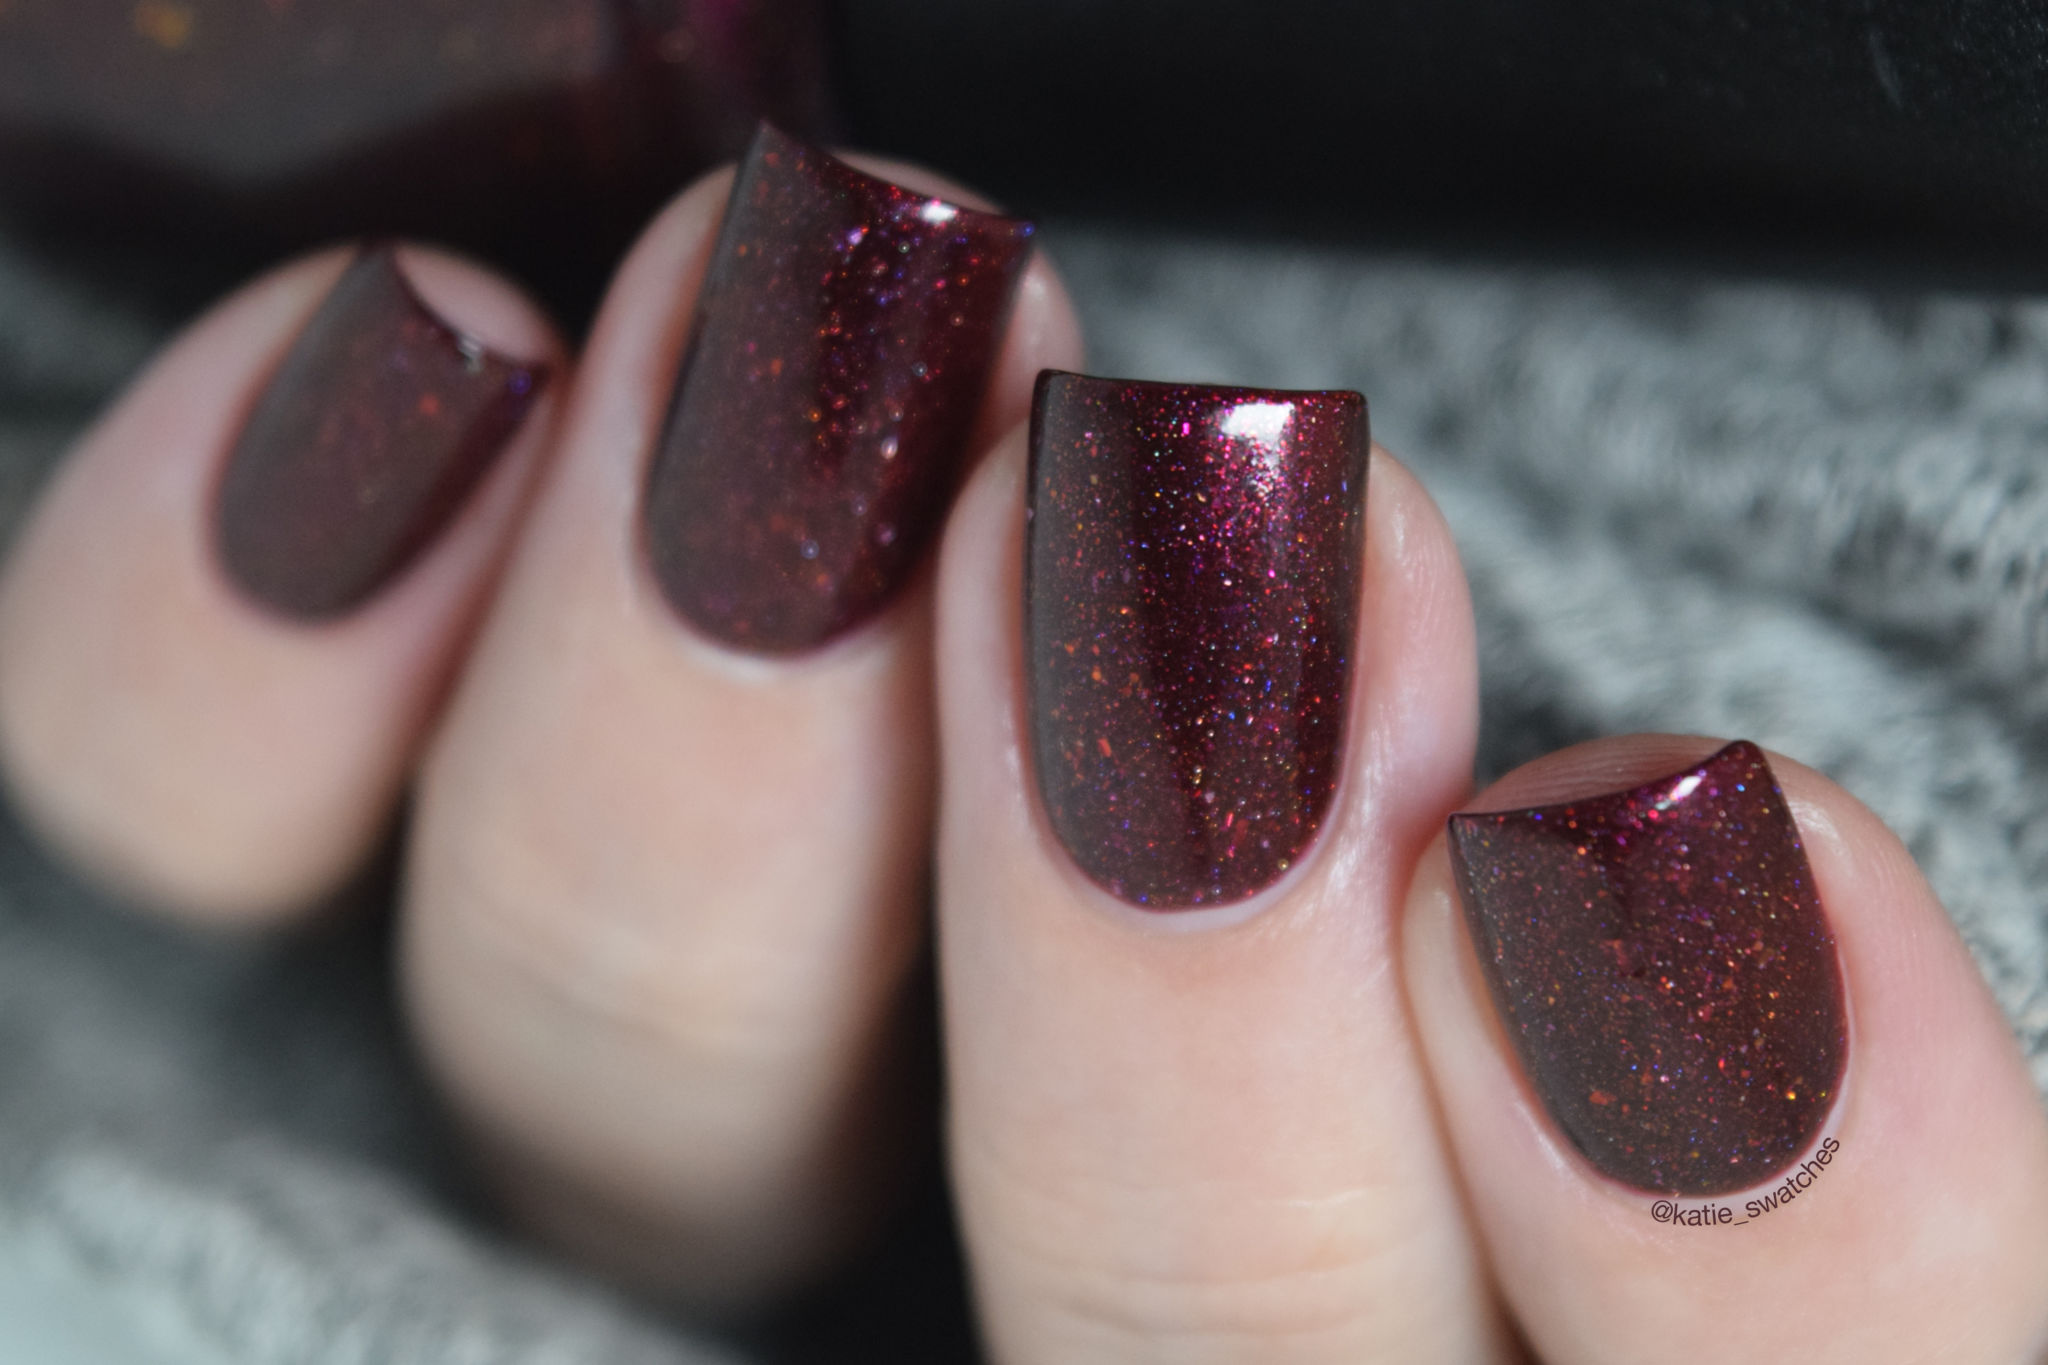 Pretty Beautiful Unlimited - Vengeance nail polish - Polish Pickup June 2018